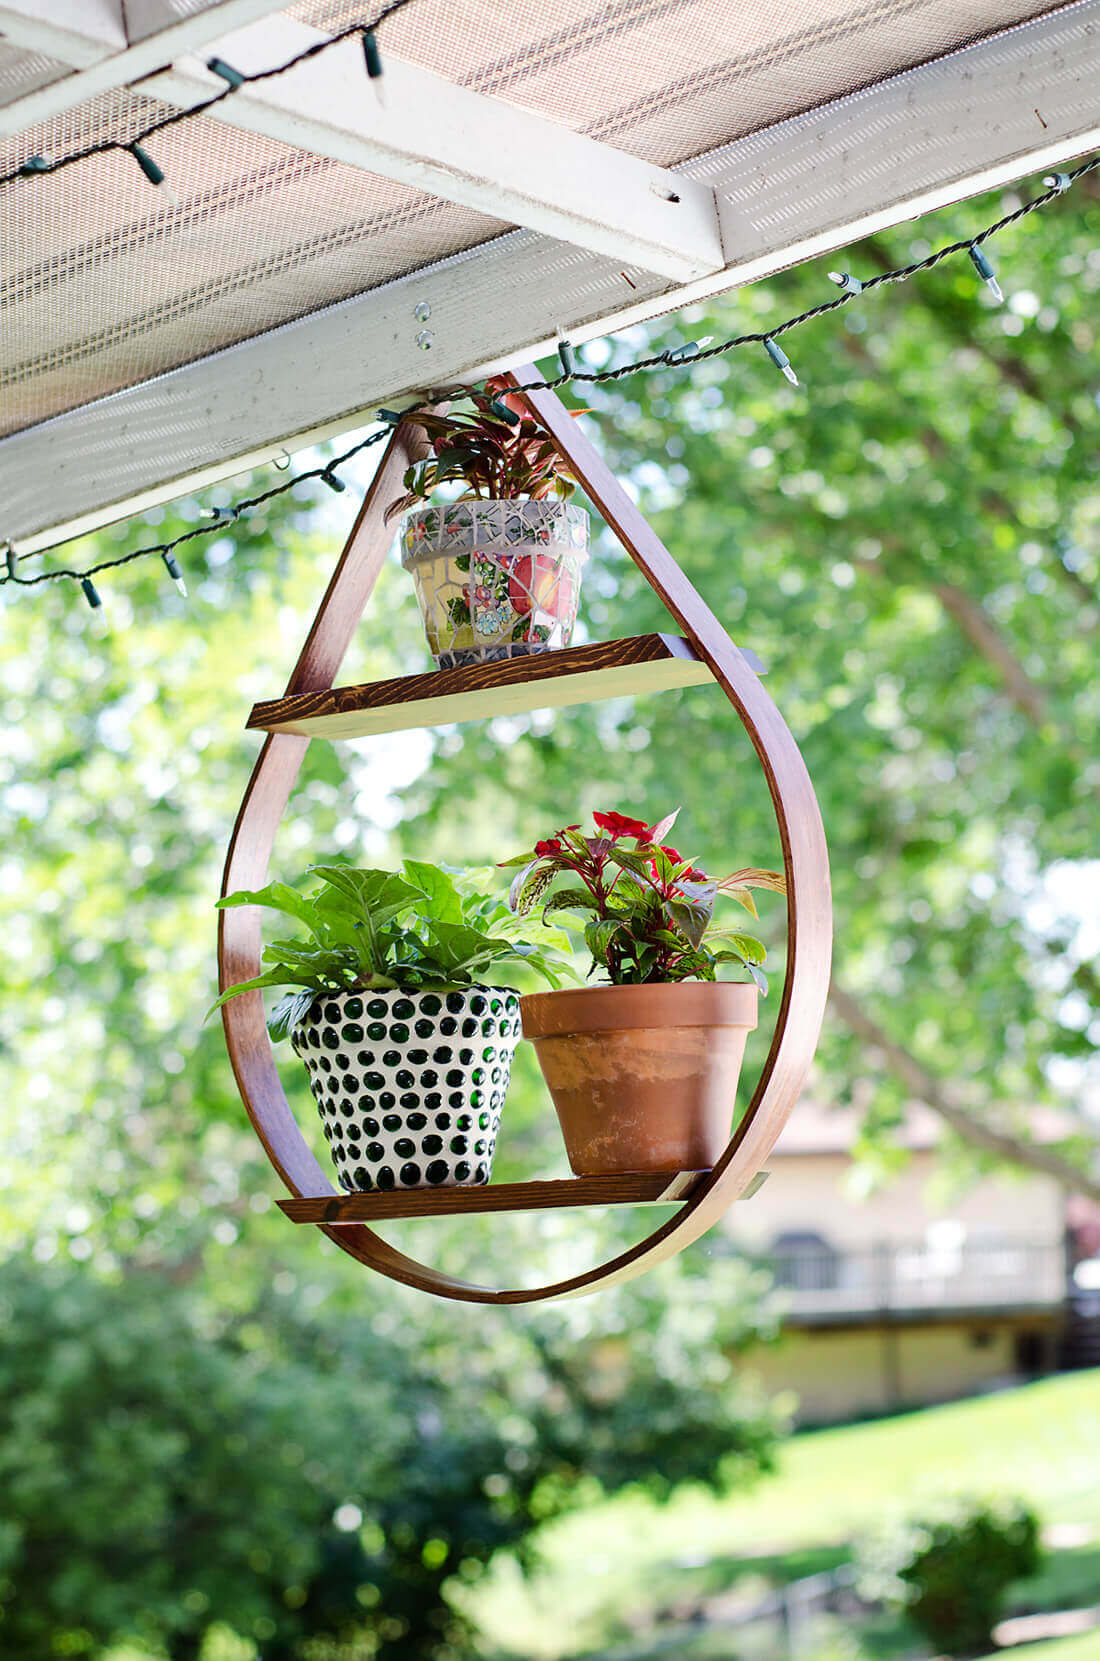 45 Best Outdoor Hanging Planter Ideas and Designs for 2017 on Plant Hanging Ideas  id=27508